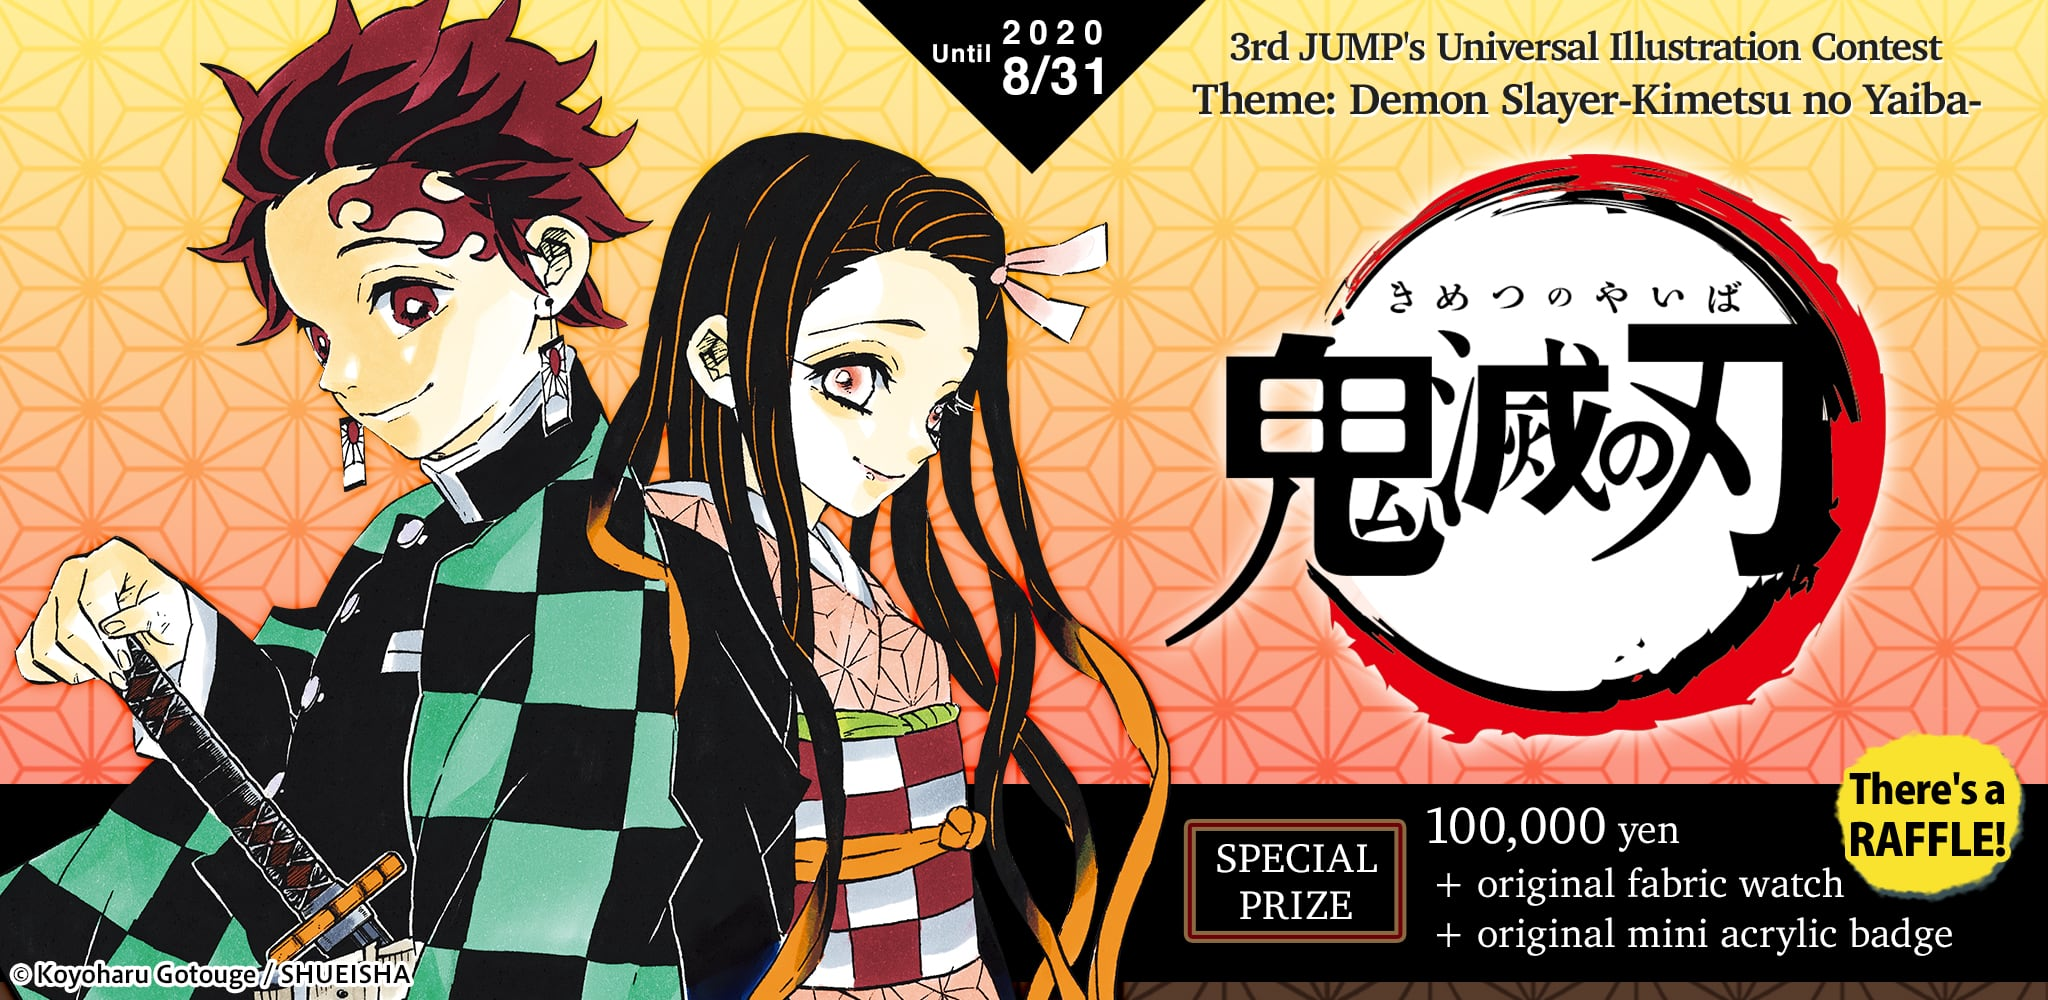 JUMP's 3rd Universal Illustration Contest is now open. Theme: Kimetsu no Yaiba